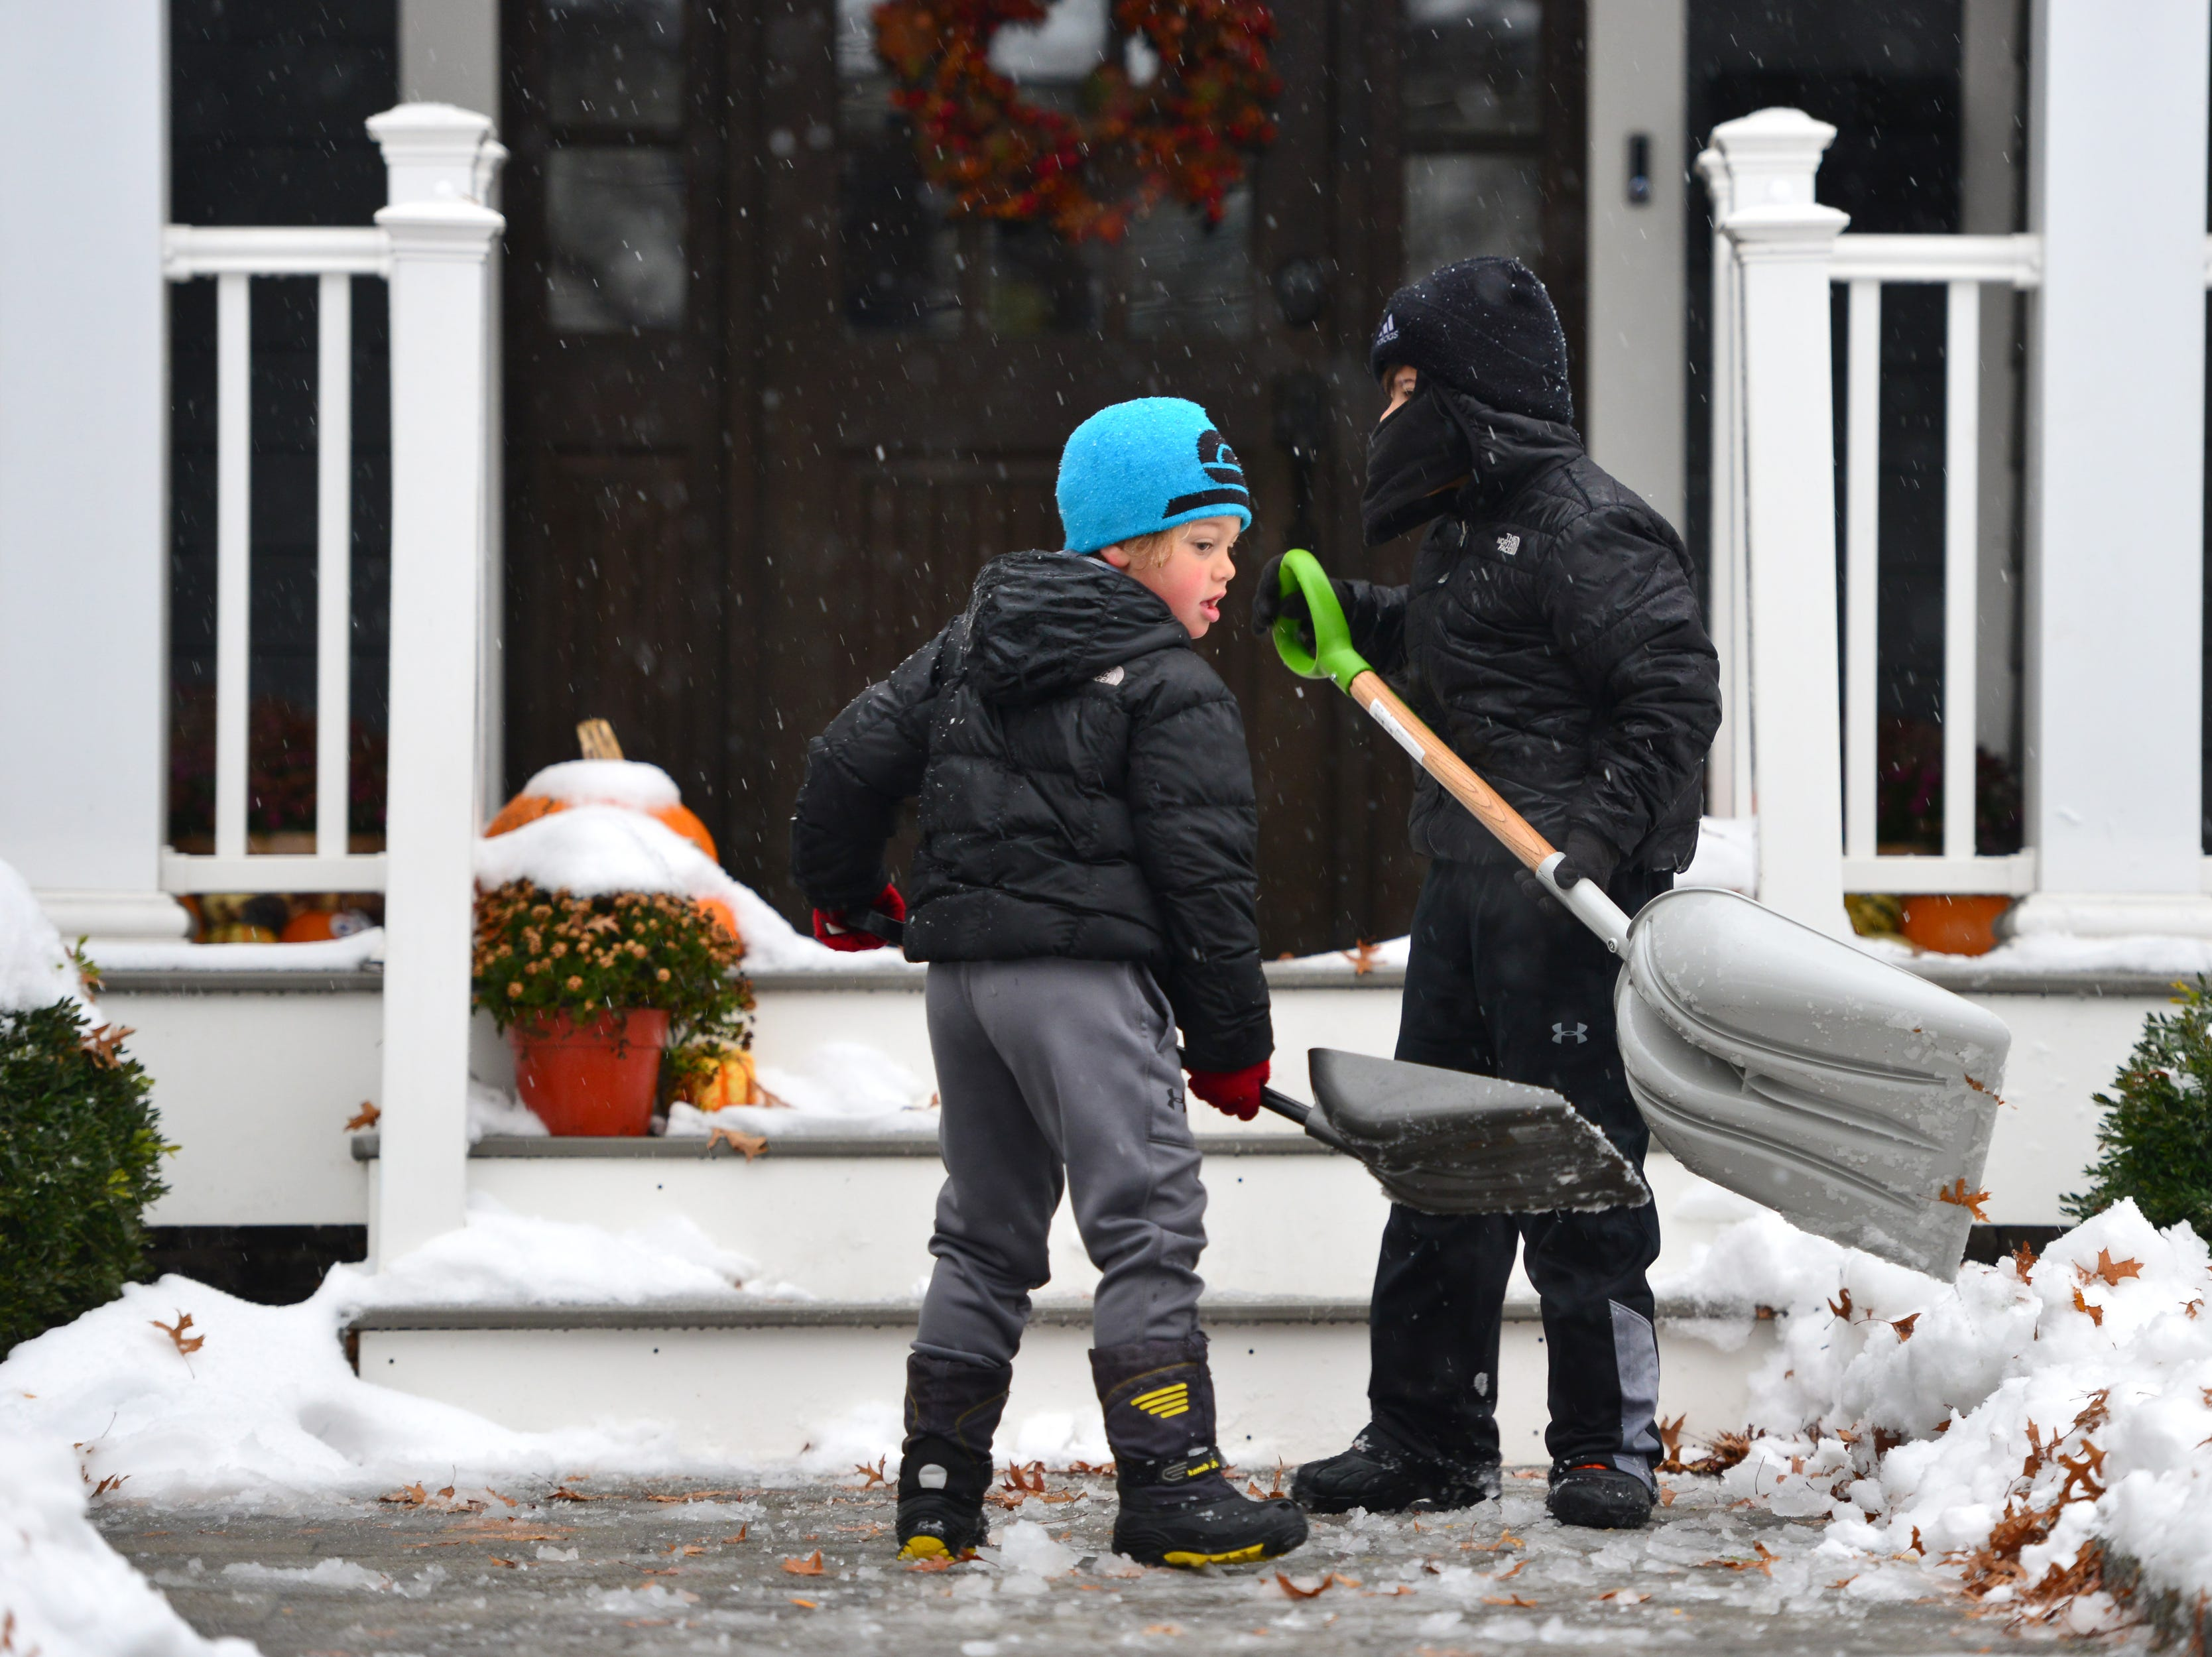 From left, Leo Mazza, 5, and his brother Luca, 8, help shovel the front walkway of their home as the snow and sleet falls in Hasbrouck Heights on Friday morning November 16, 2018.